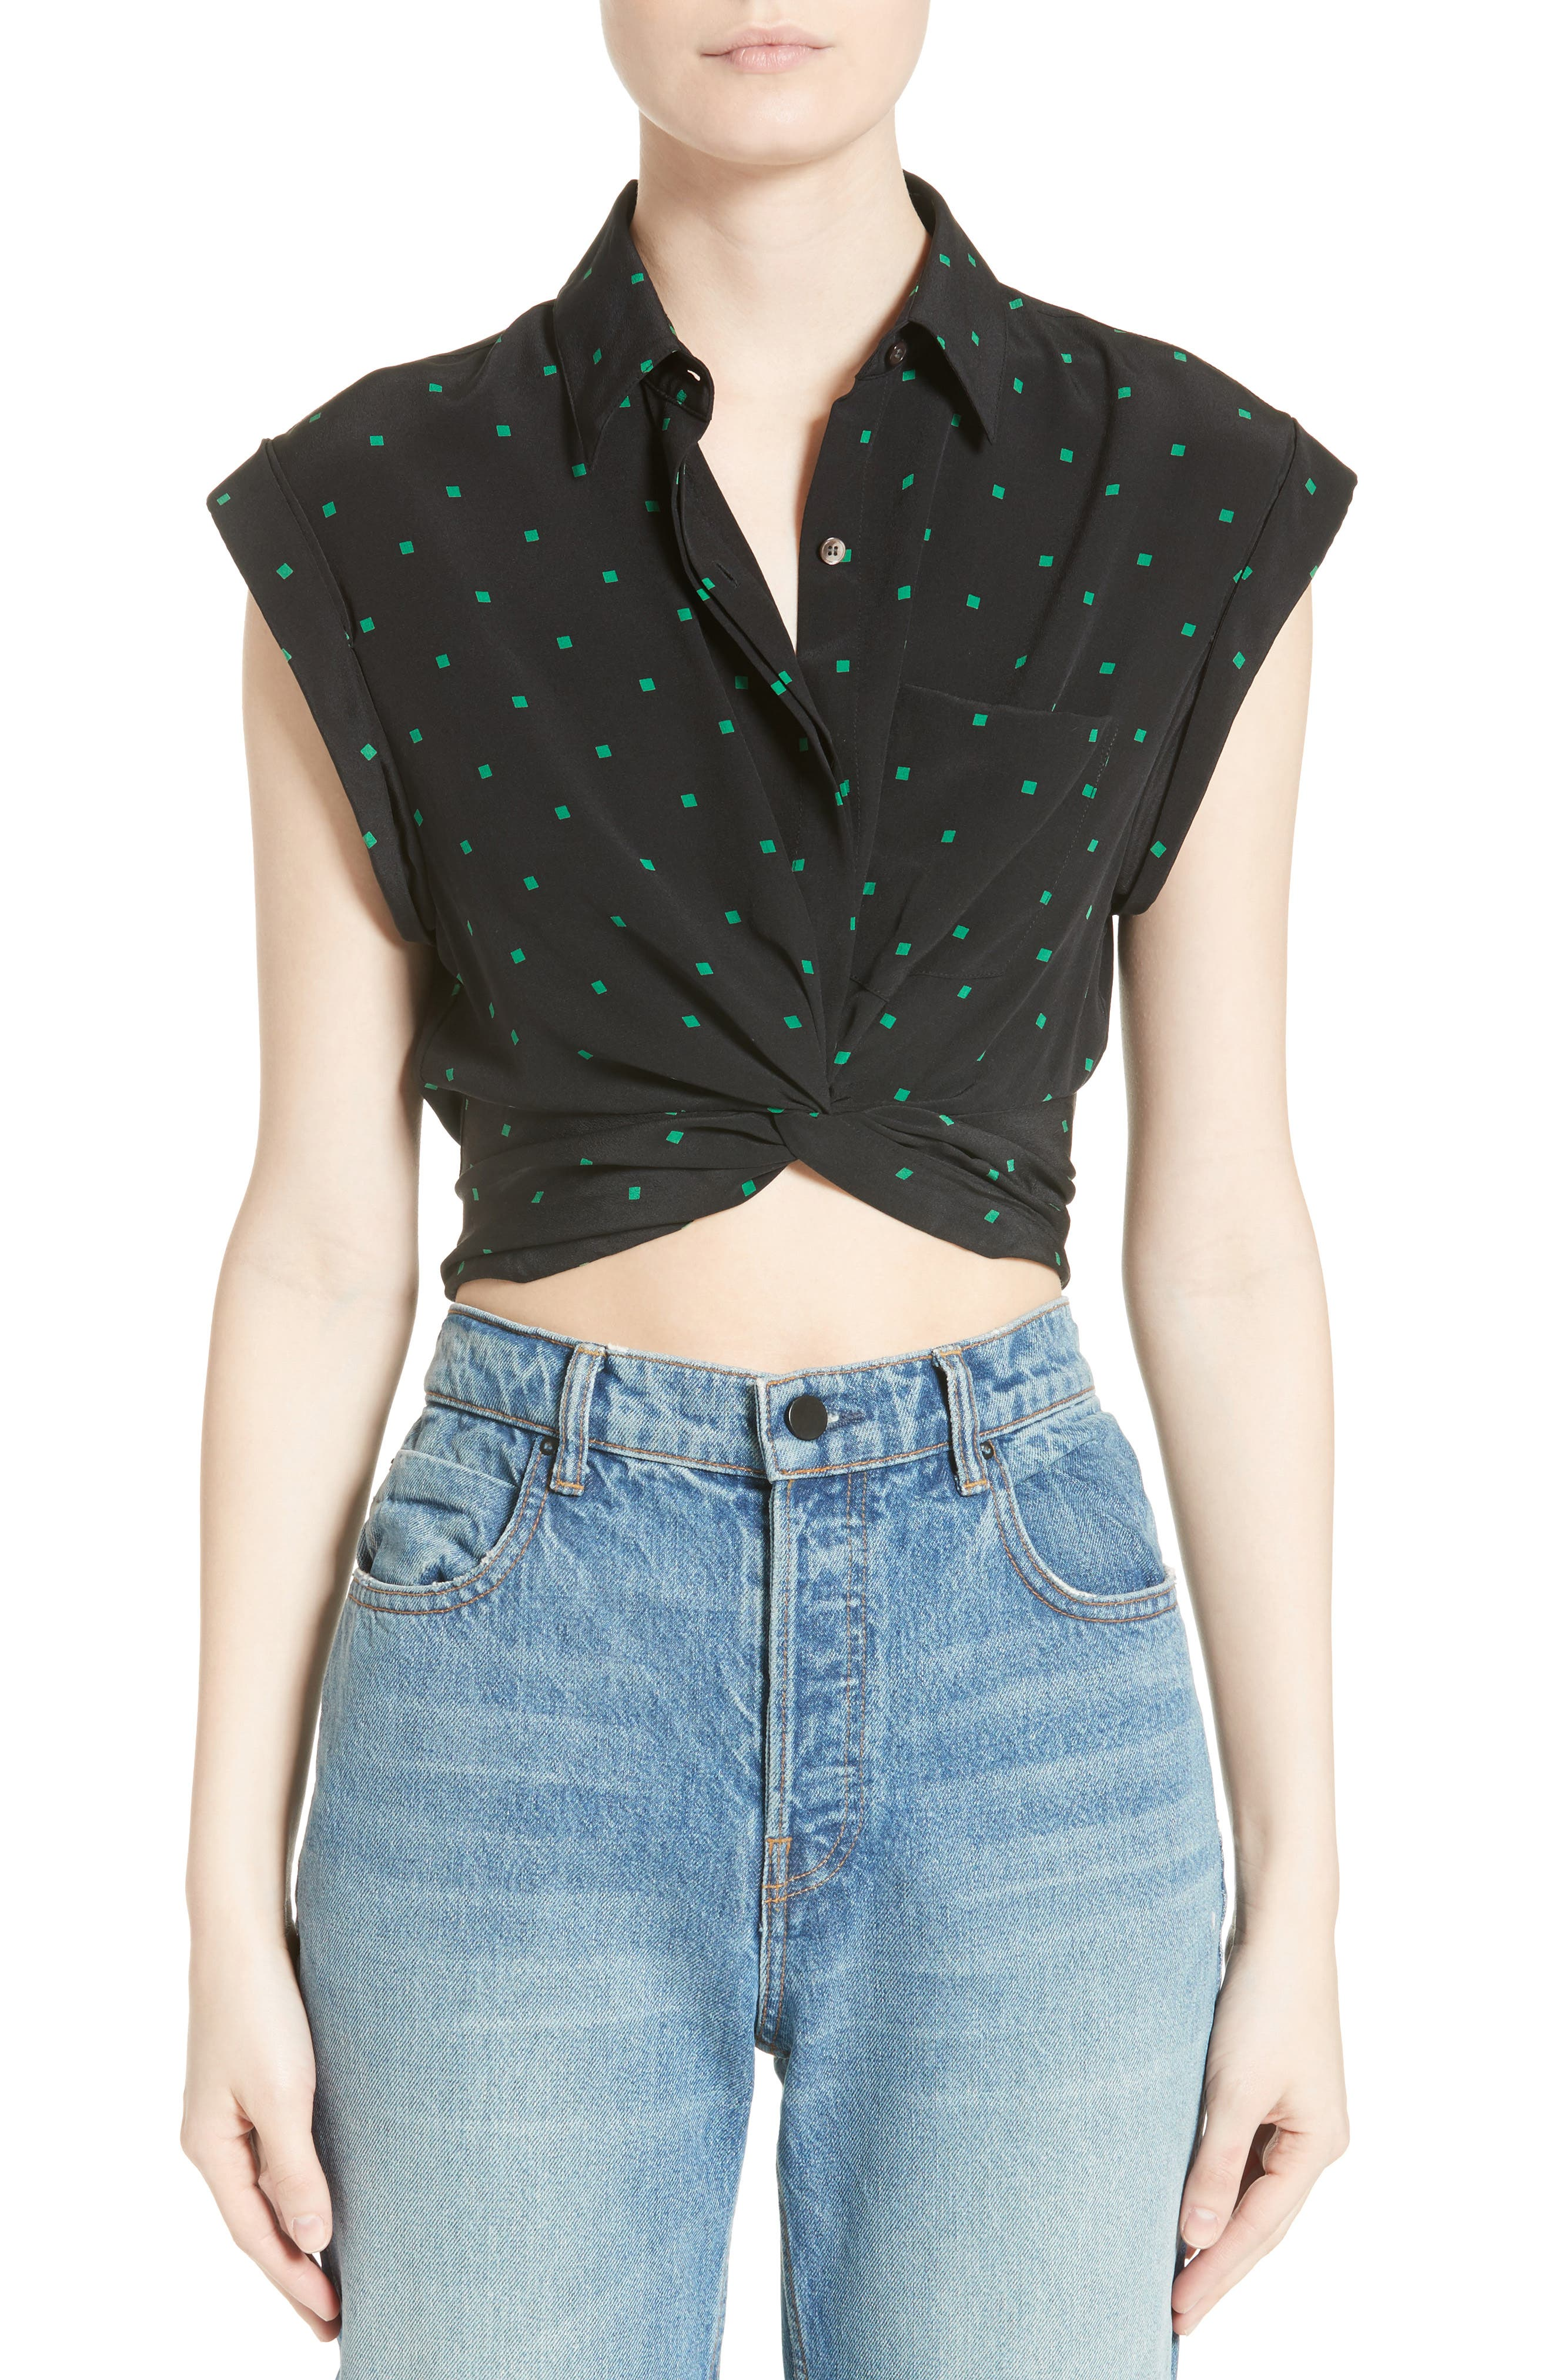 Alternate Image 1 Selected - T by Alexander Wang Knotted Print Silk Crop Top